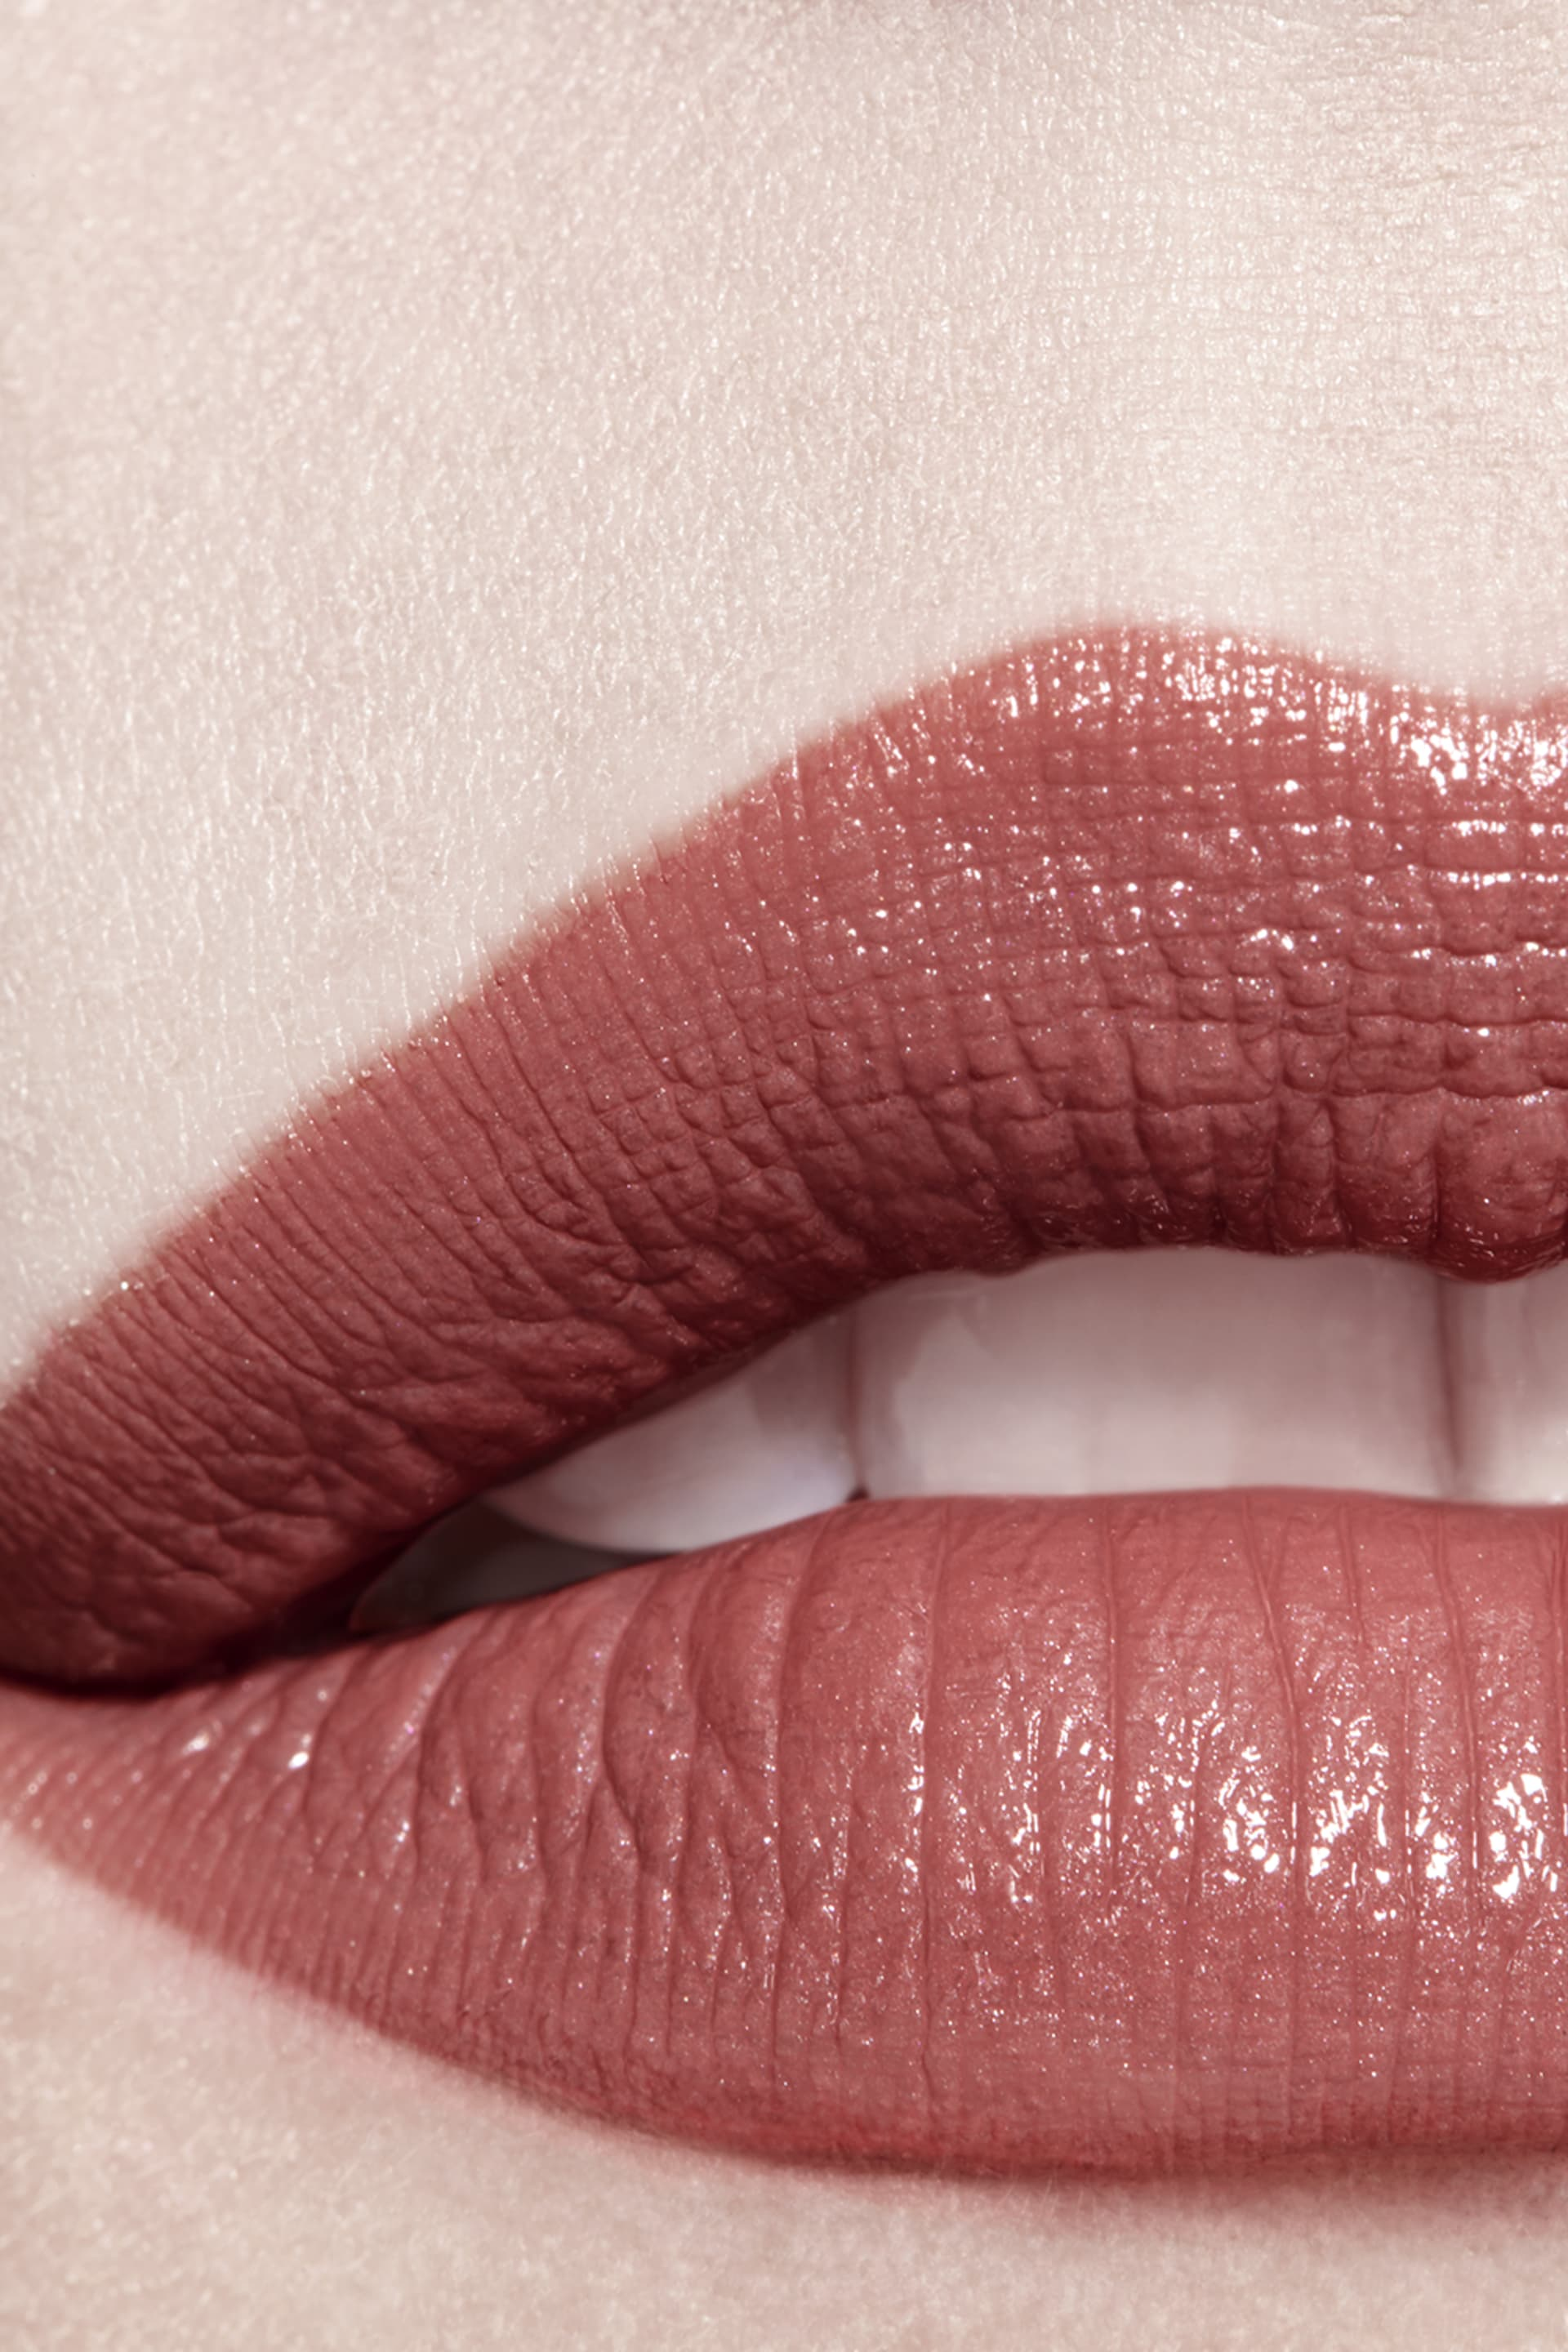 Application makeup visual 3 - ROUGE COCO 438 - SUZANNE